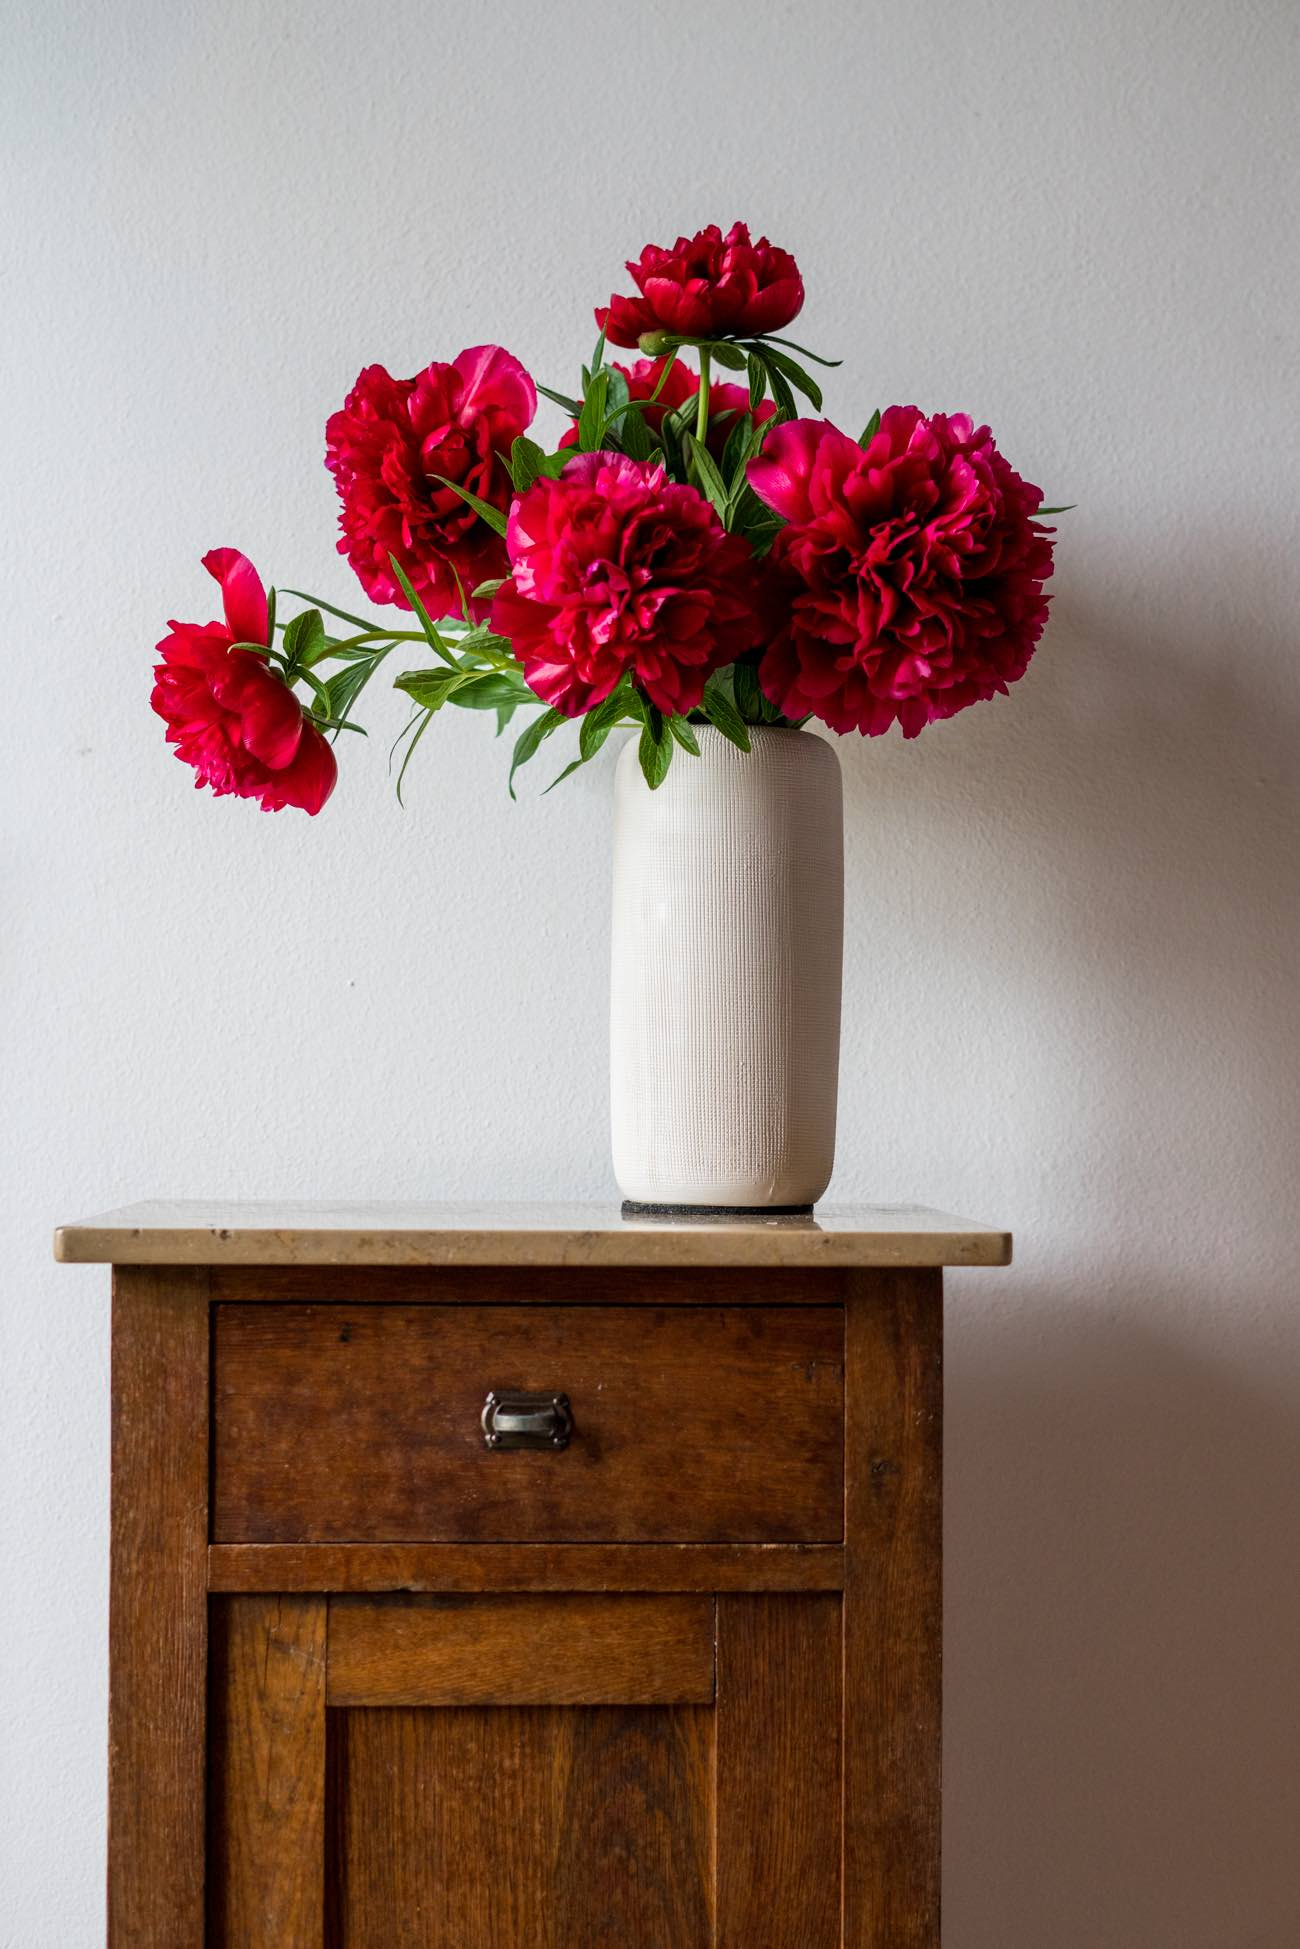 A Vase of red peonies